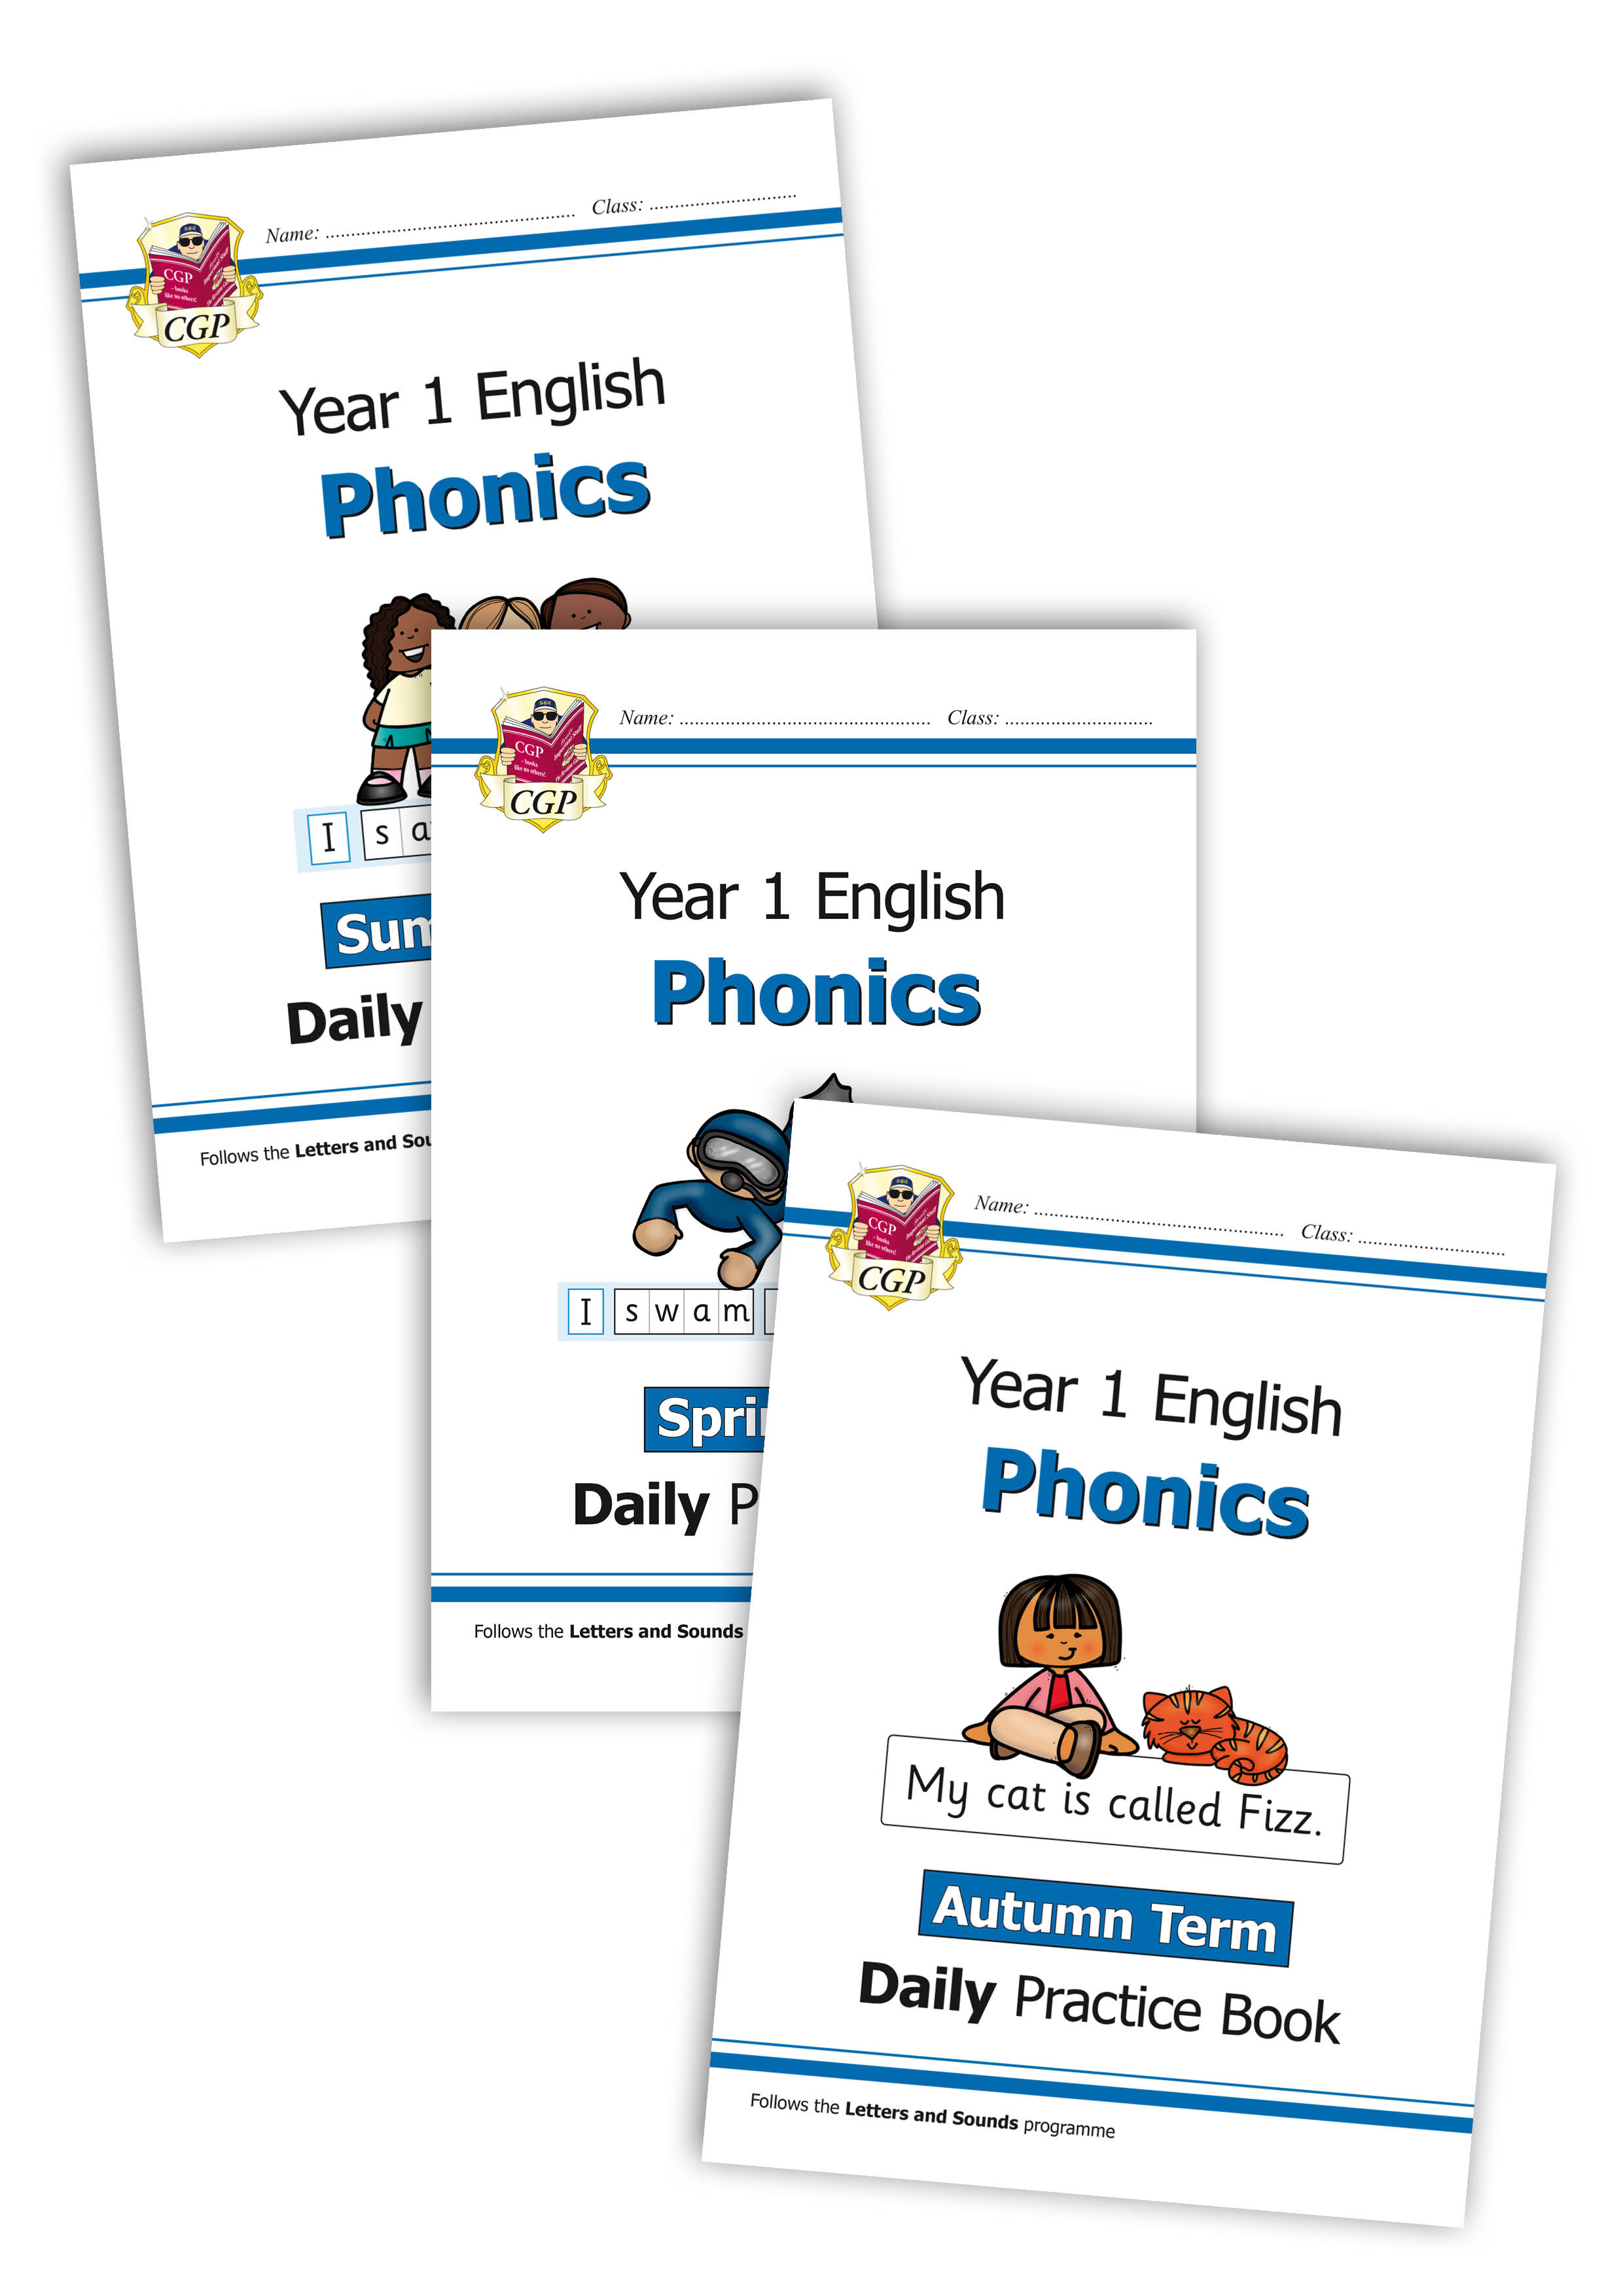 E1OWB211 - New KS1 Phonics Daily Practice Book Bundle: Year 1 - Autumn Term, Spring Term & Summer Te